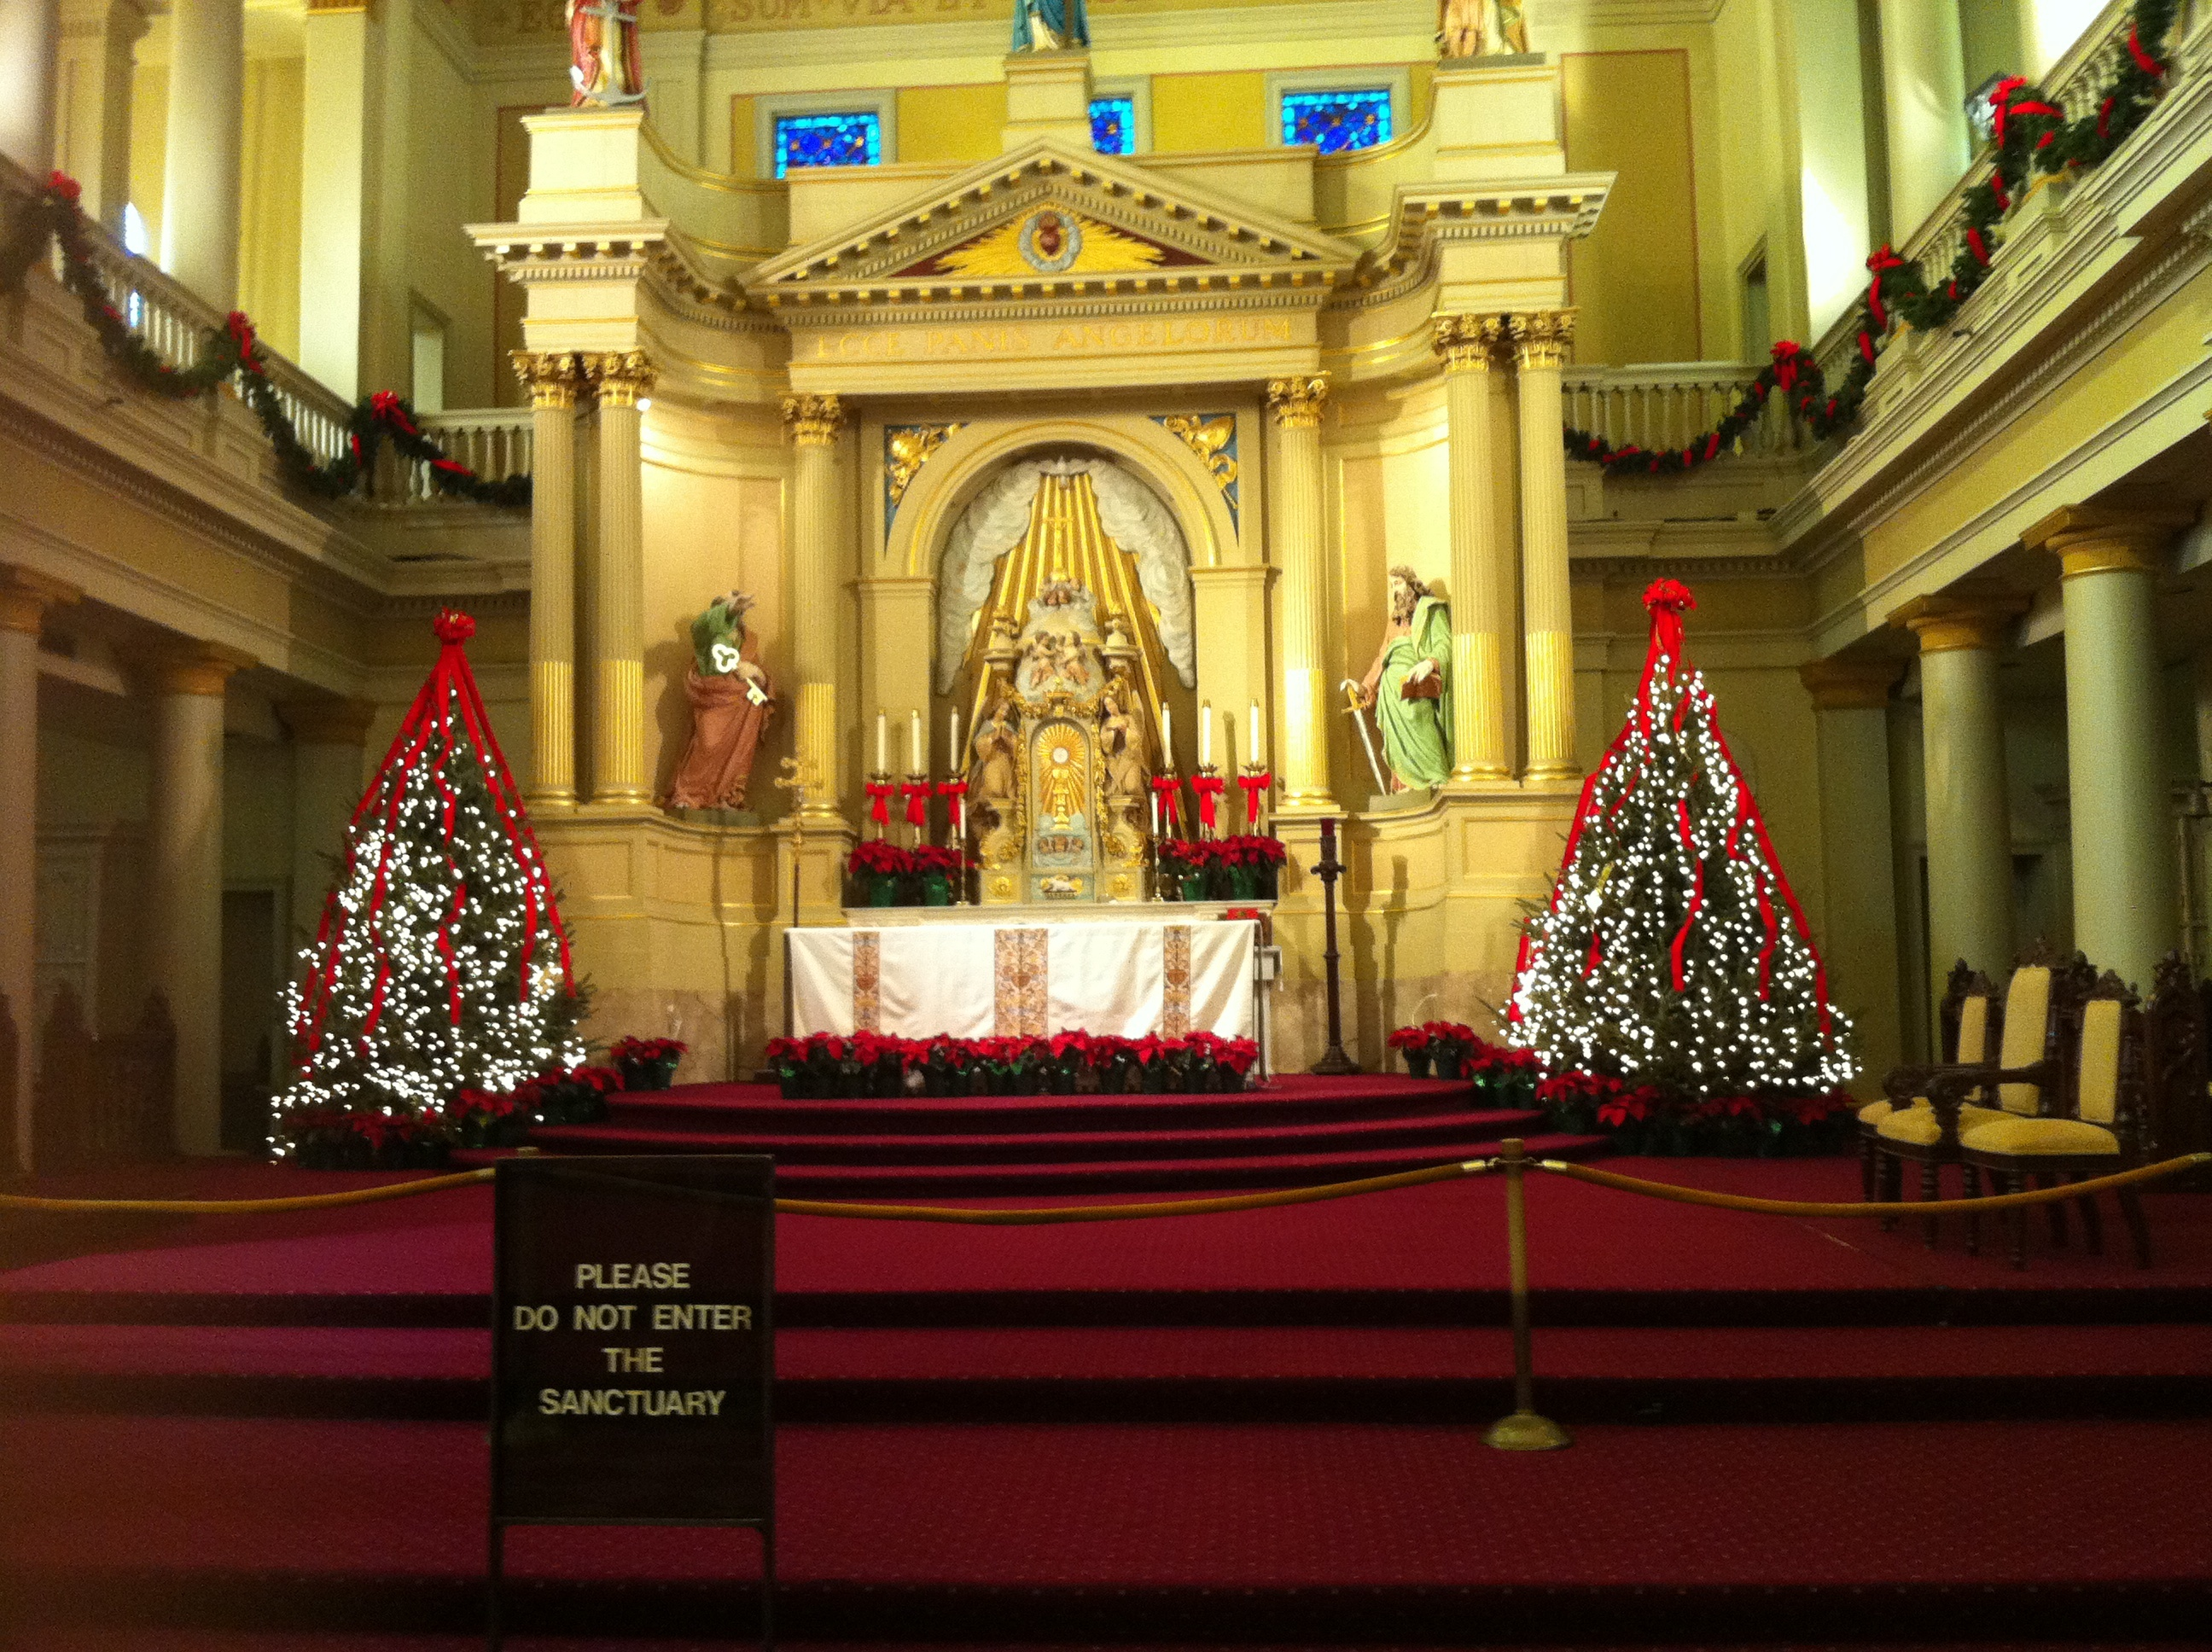 File:New Orleans Cathedral Altar at Christmas.jpg - Wikimedia Commons